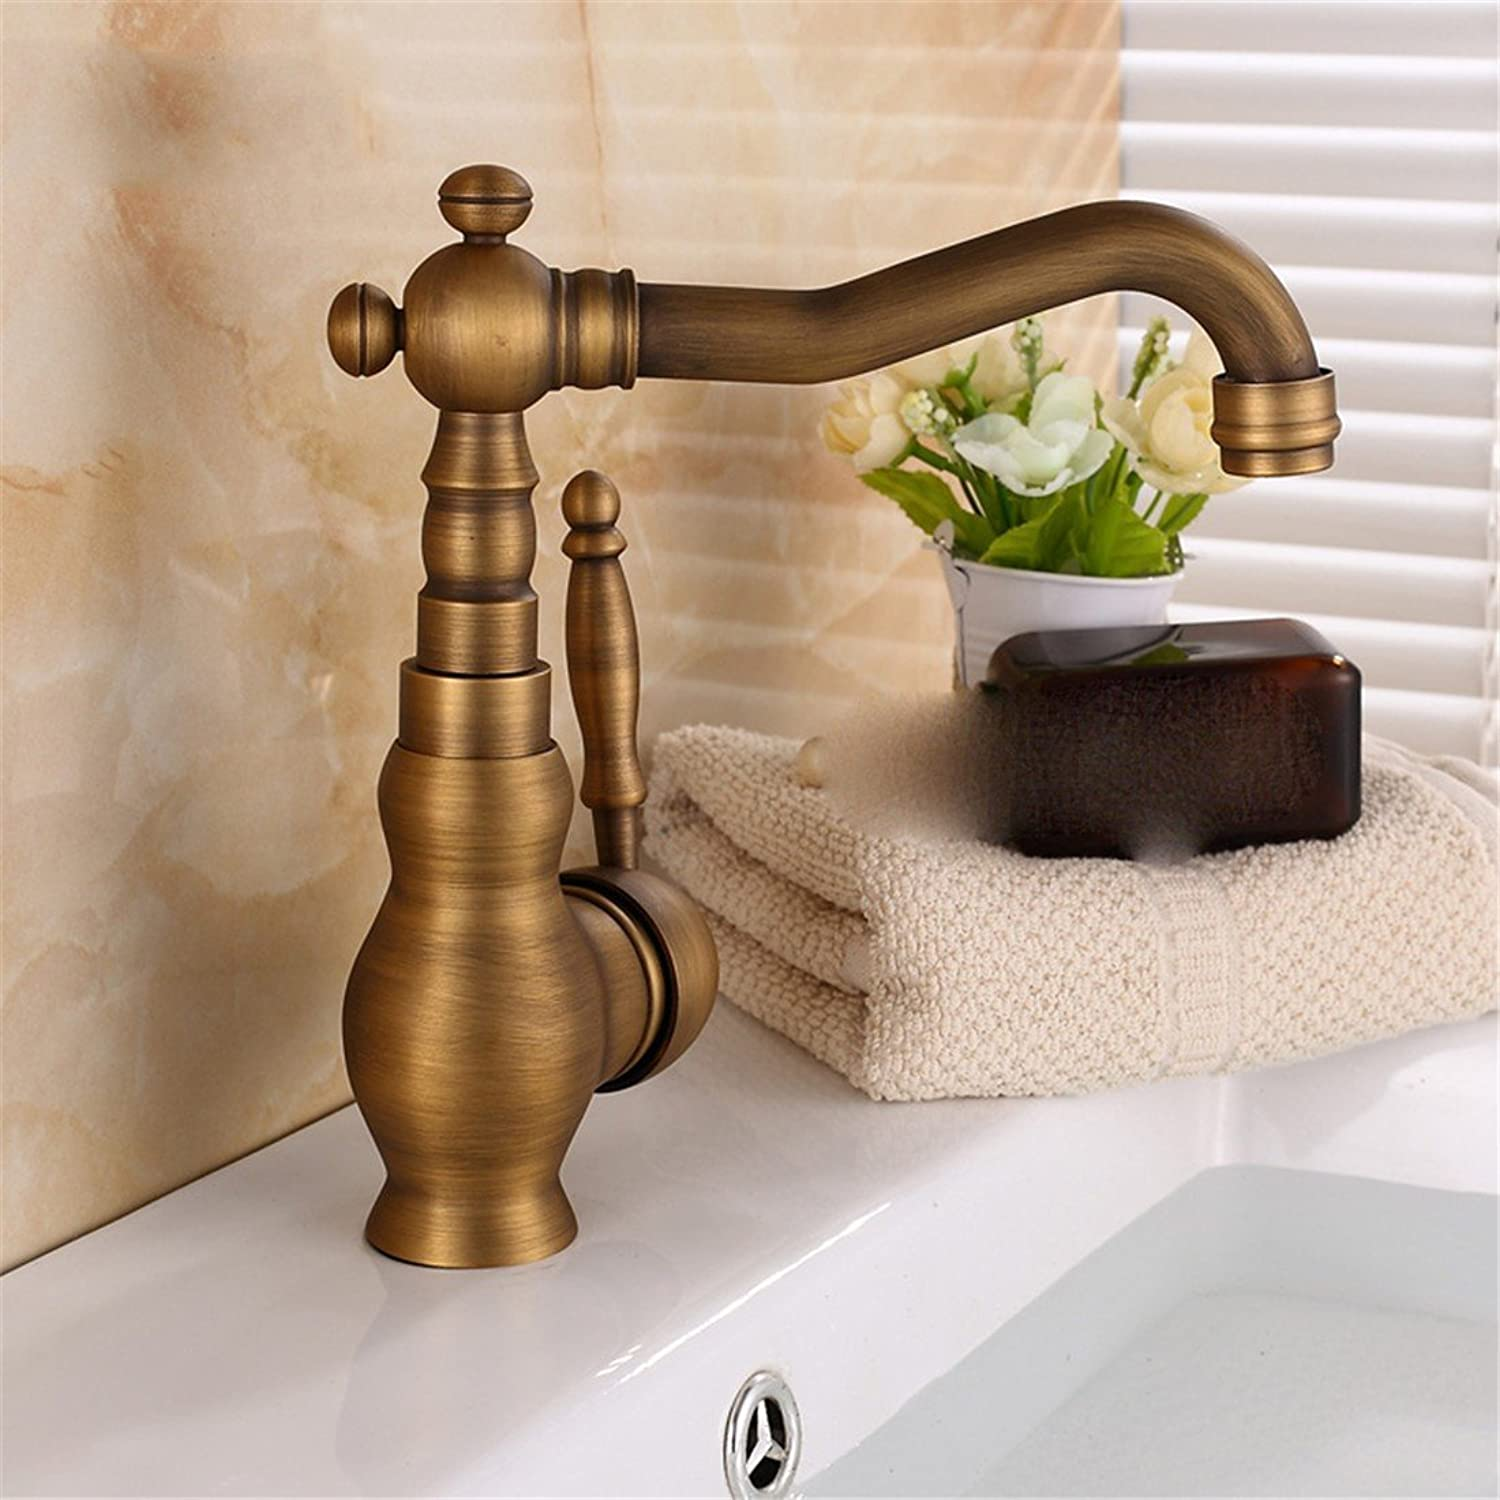 Hlluya Professional Sink Mixer Tap Kitchen Faucet Antique faucet brushed antique copper basin-wide lowered basin can be redated and cold water faucet, antique color